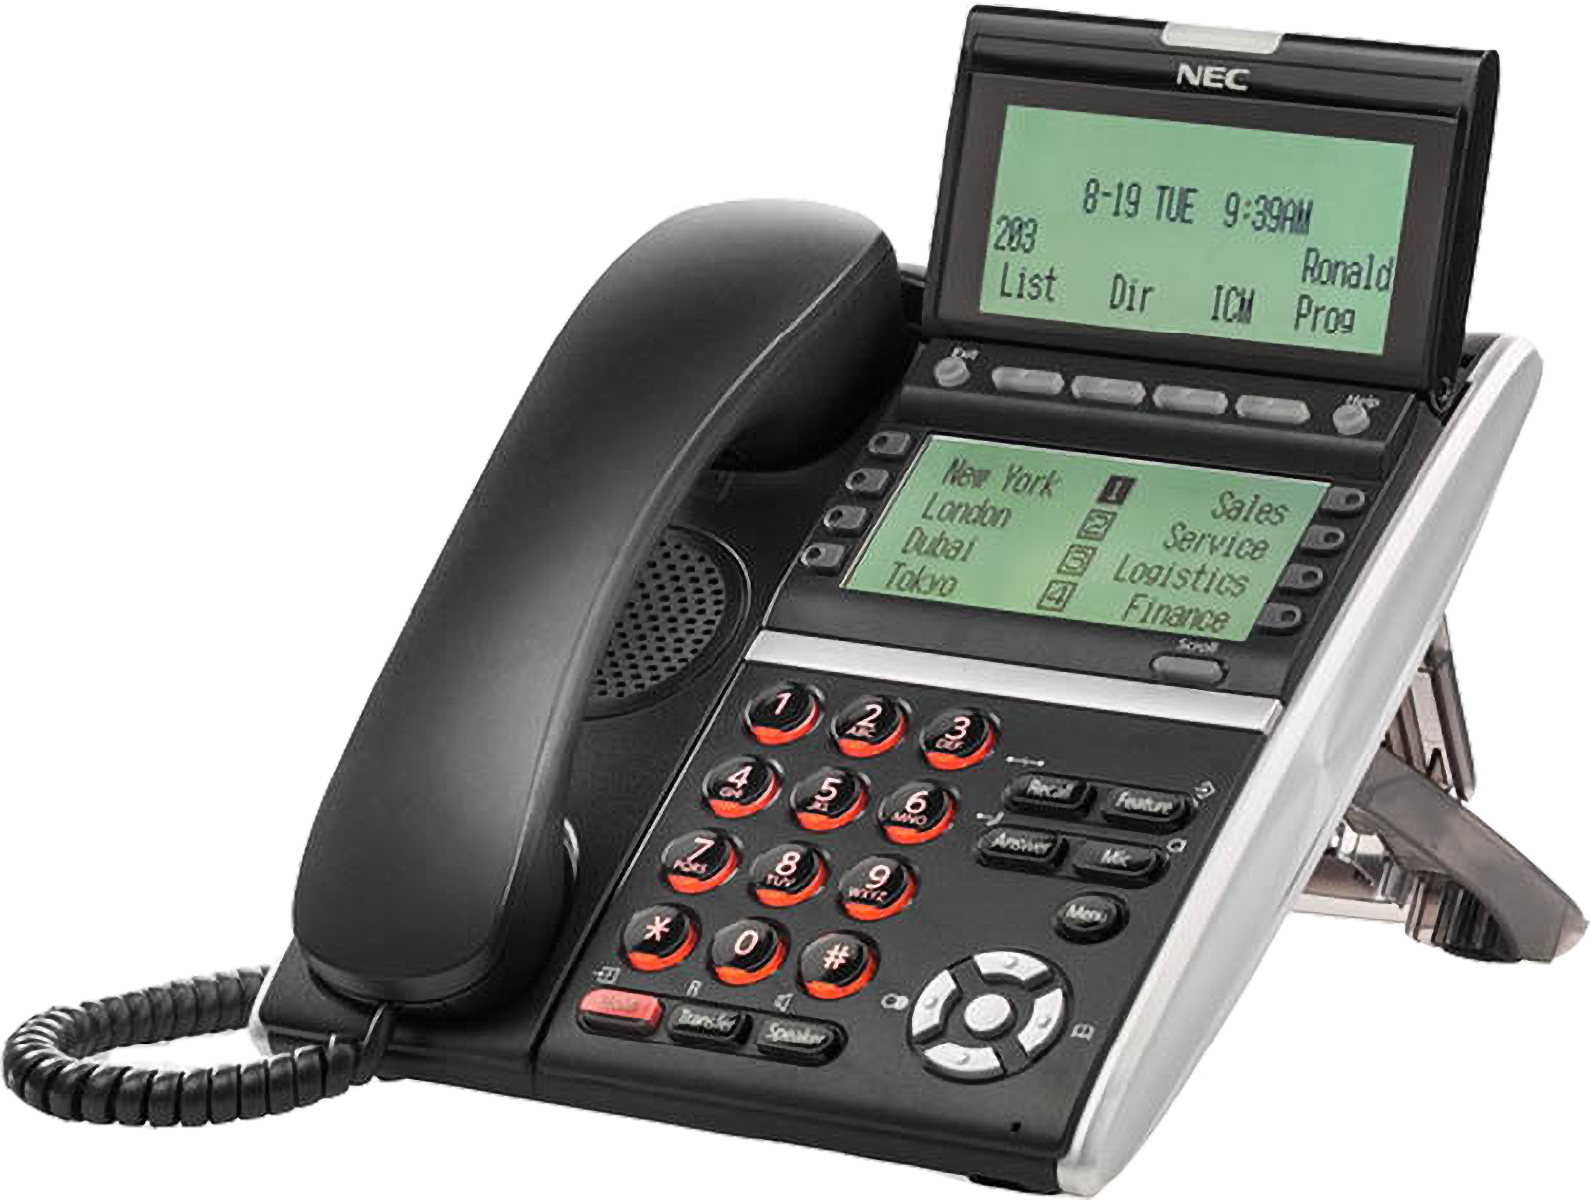 Voip Phone Systems For Small Business Winnipeg Manitoba Telecom Options